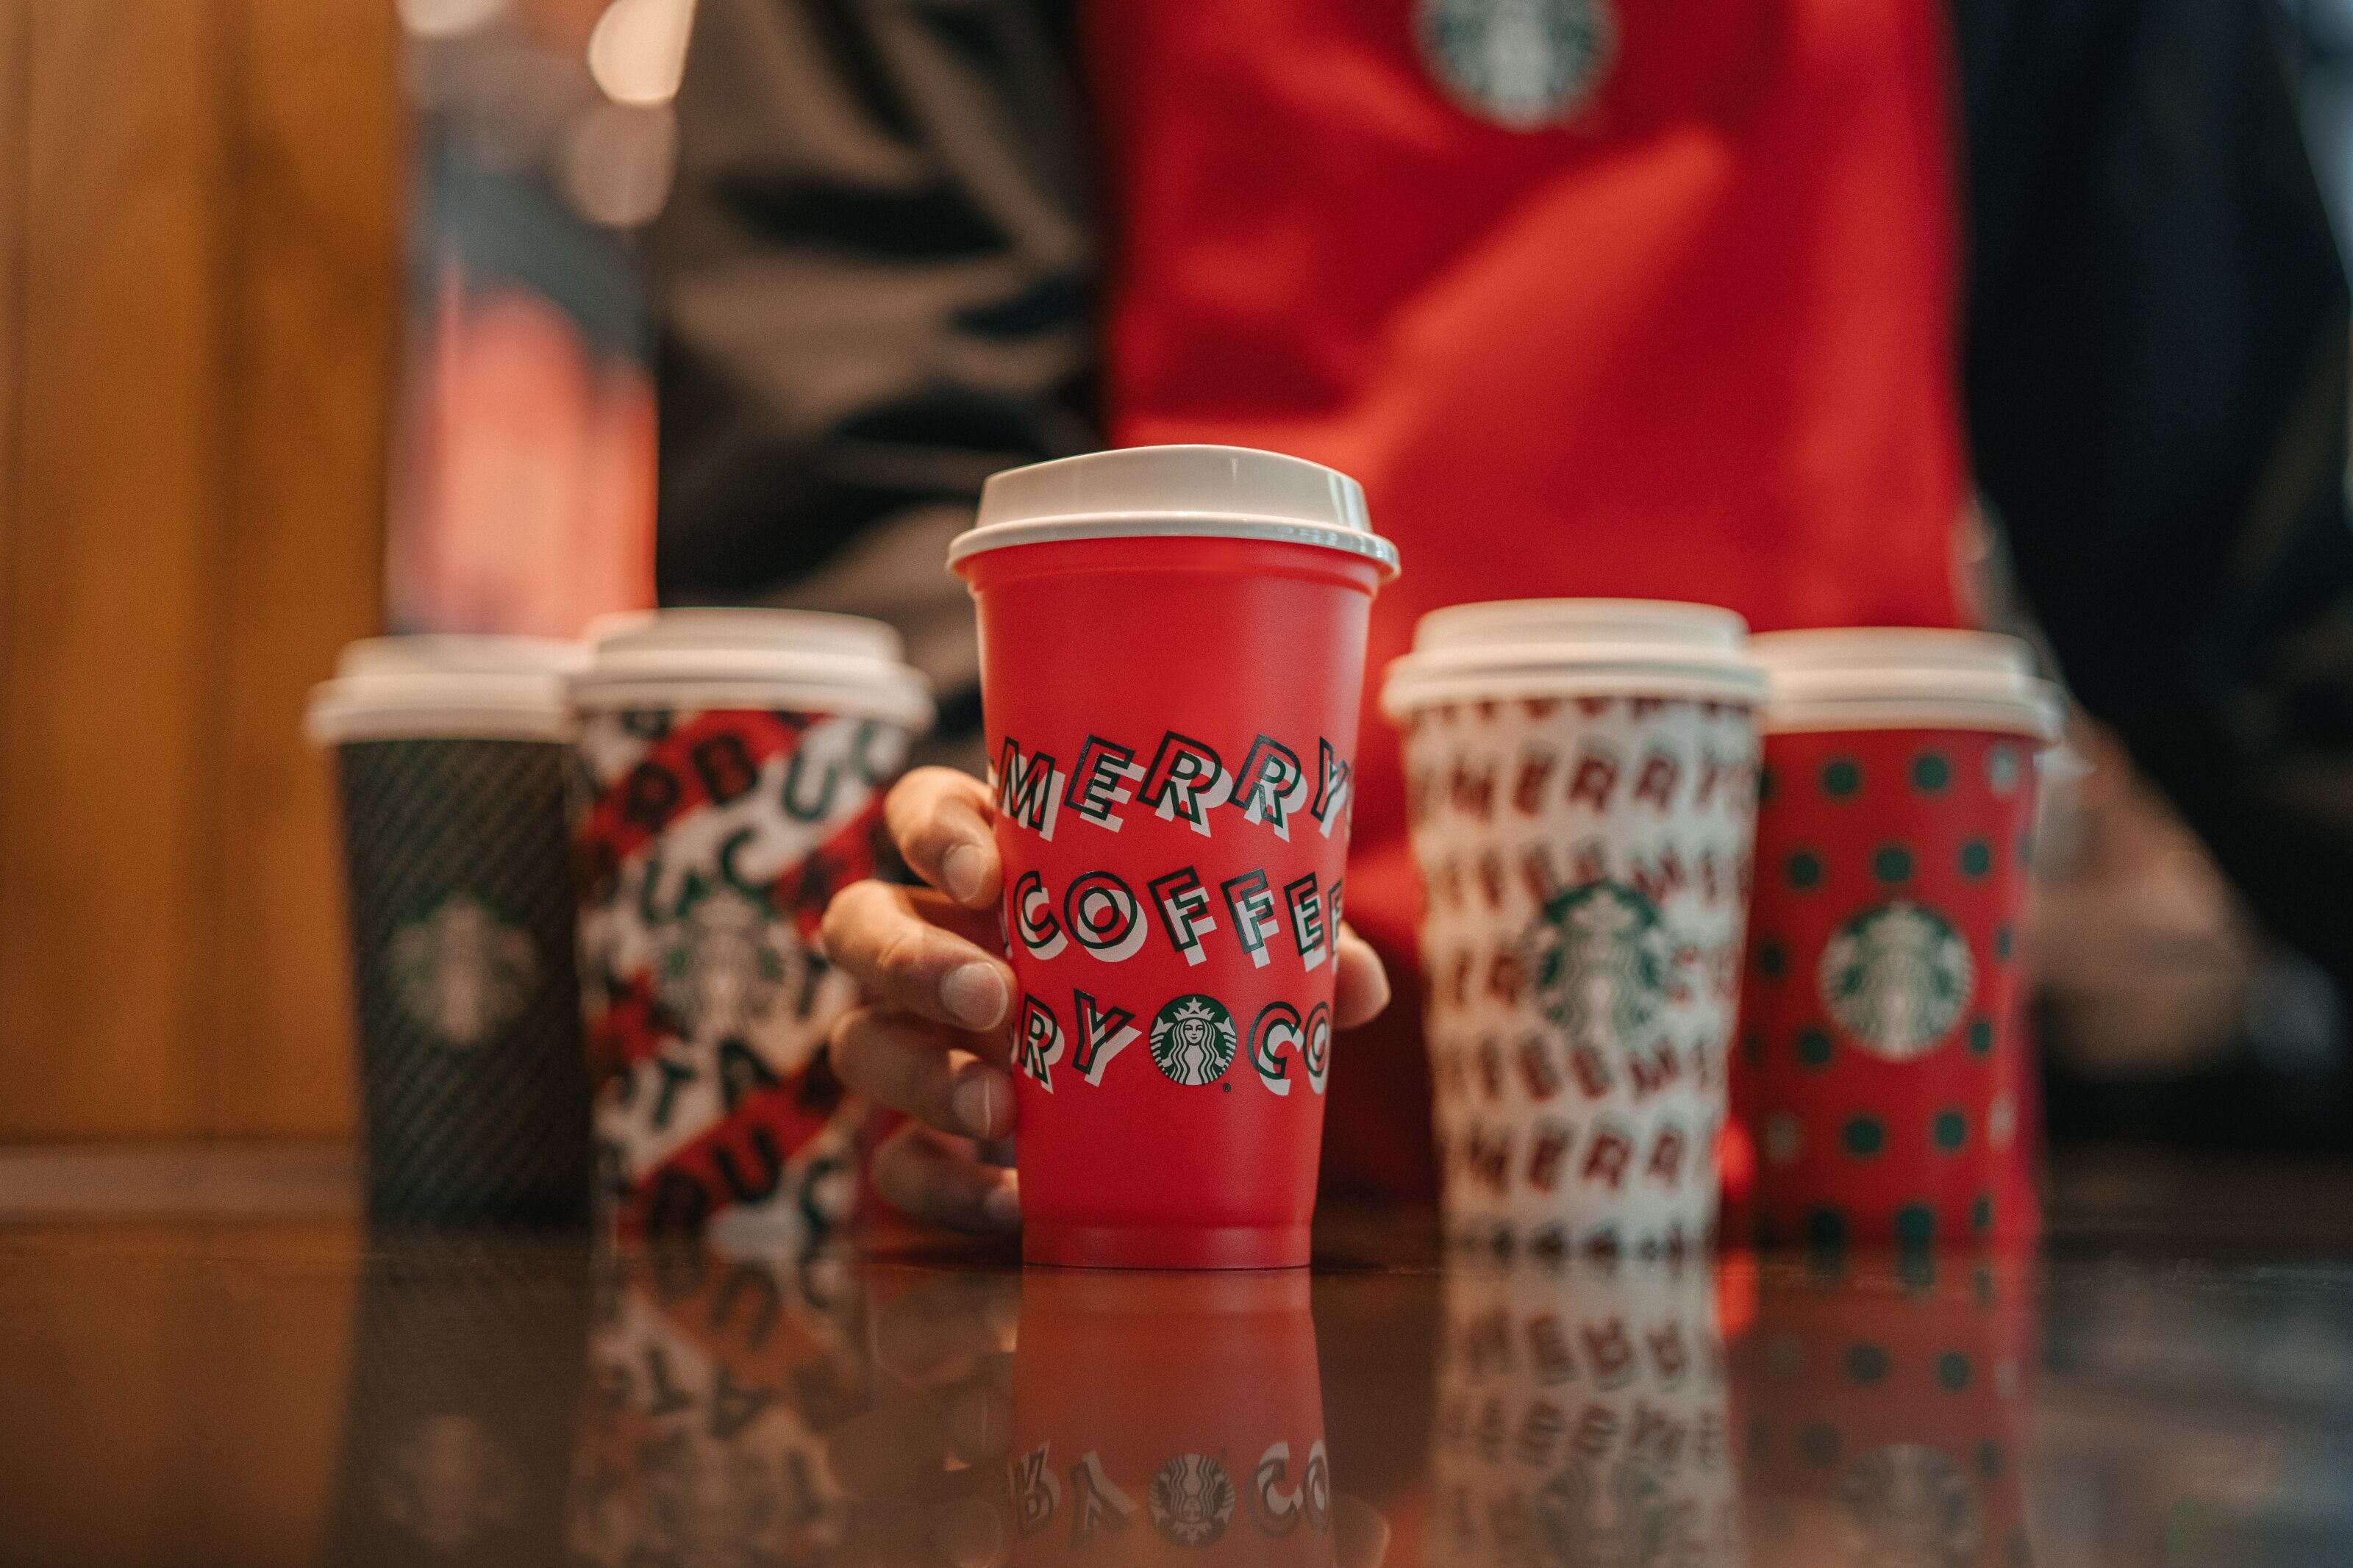 Is Starbucks Open On Thanksgiving 2019?